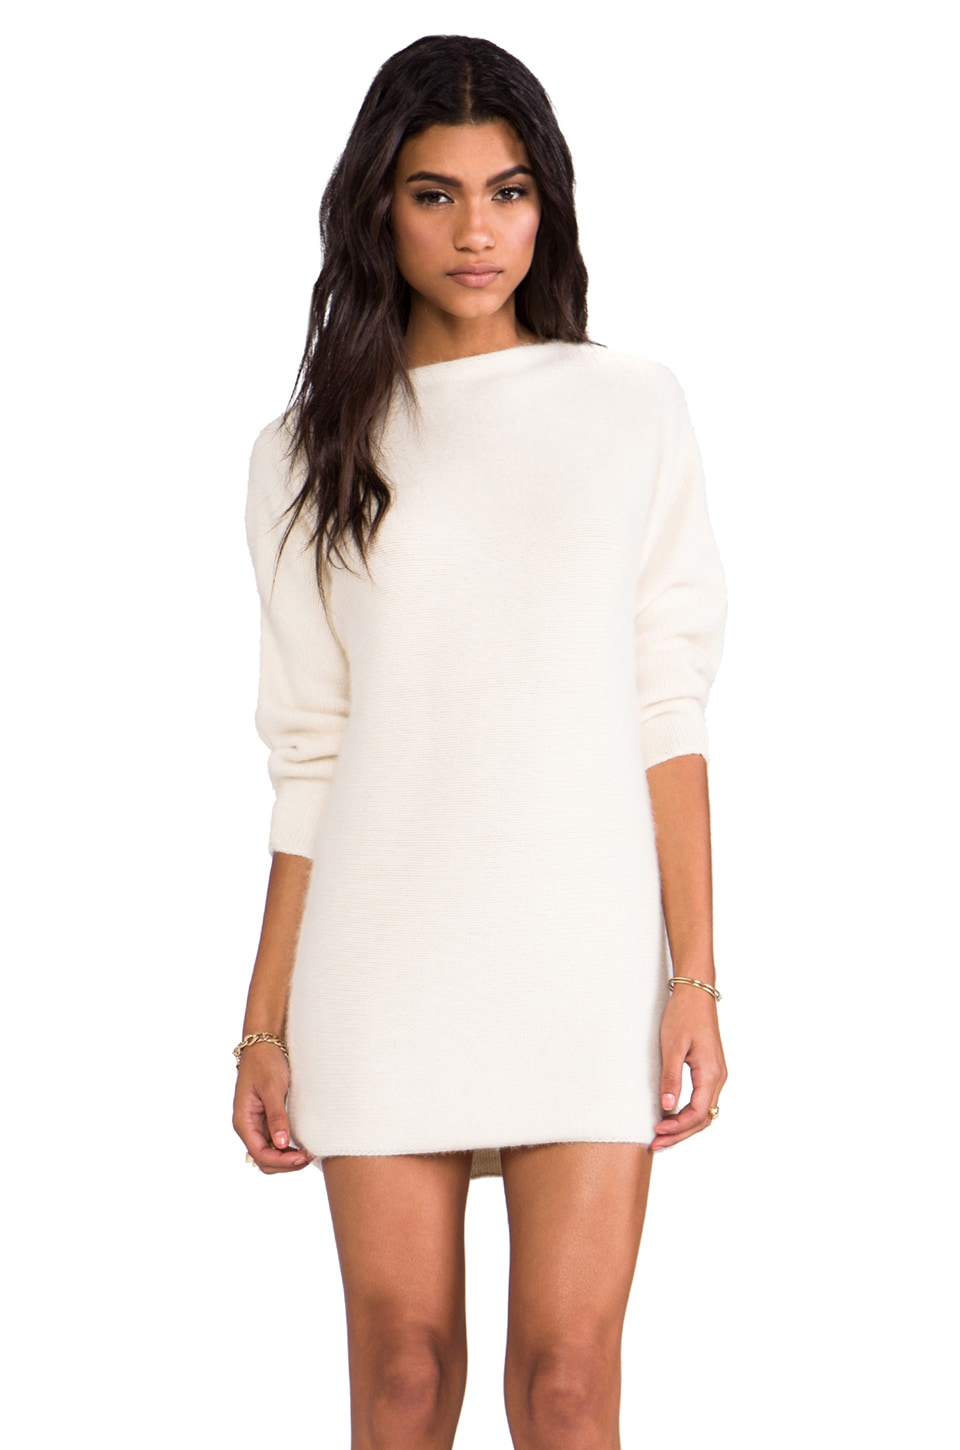 DemyLee Colette Mini Dress in Ivory